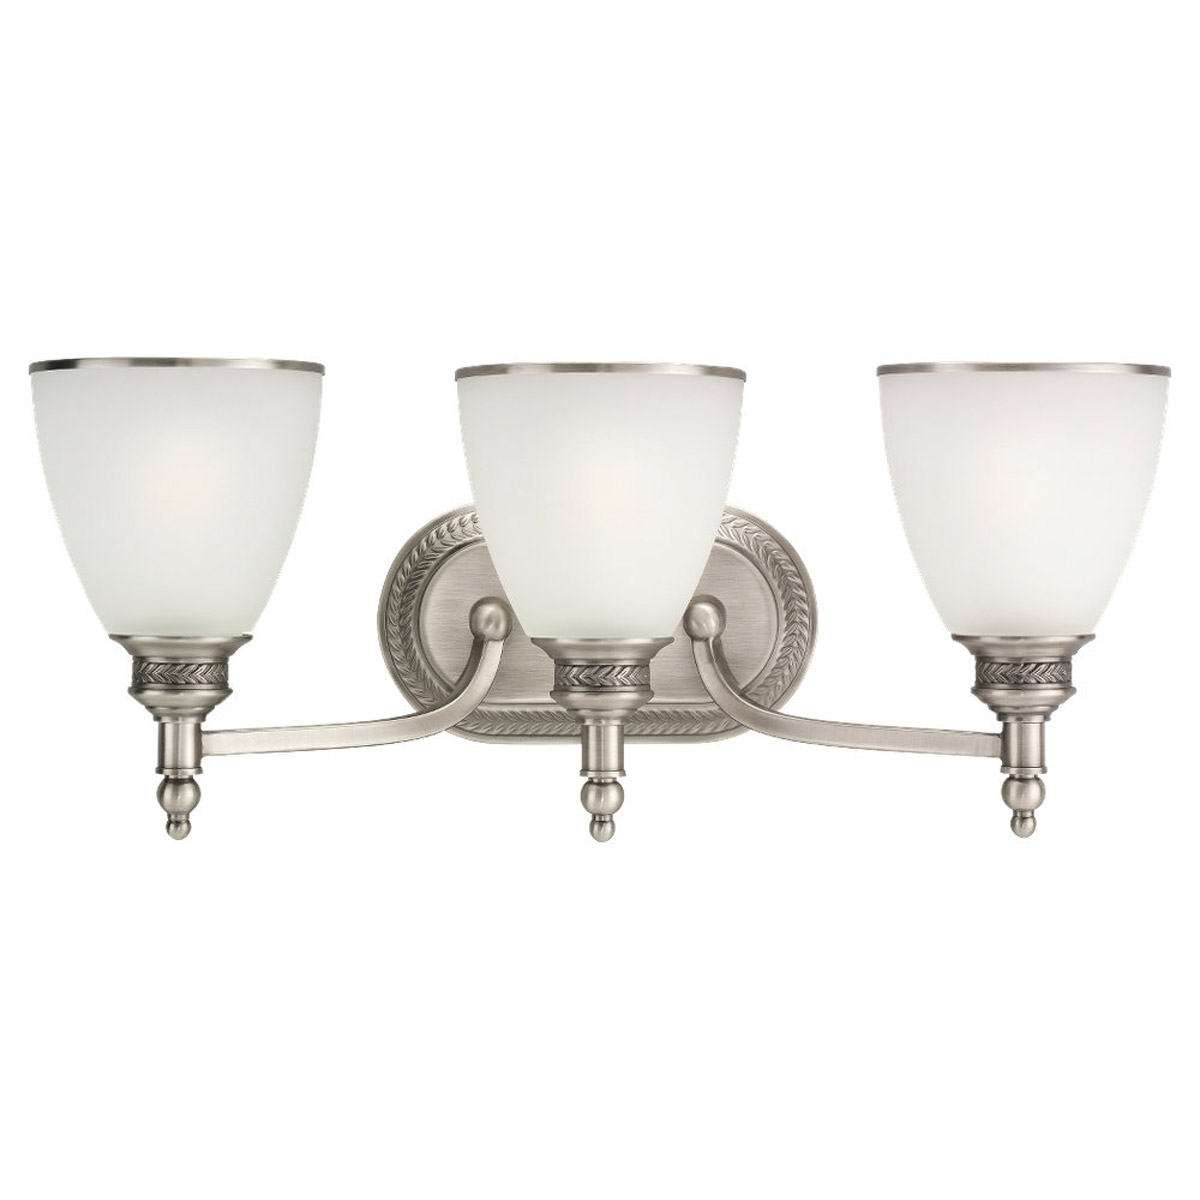 Sea Gull Lighting Laurel Leaf 3 Light Bath Vanity in Antique Brushed Nickel 44351-965